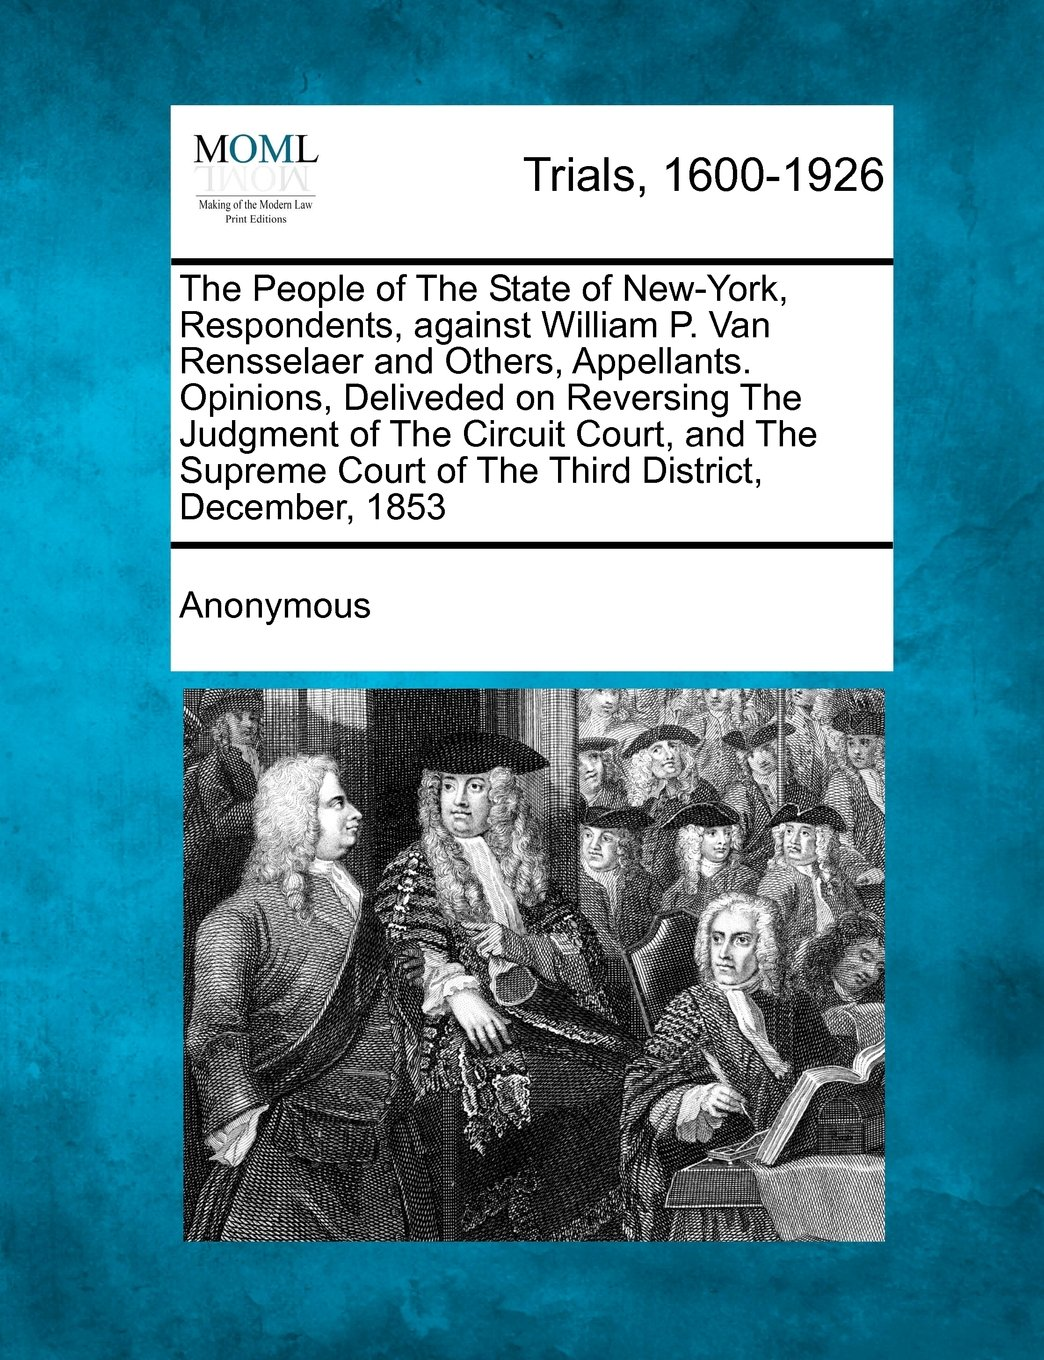 The People of the State of New-York, Respondents, Against William P. Van Rensselaer and Others, Appellants. Opinions, Deliveded on Reversing the Judgm ebook